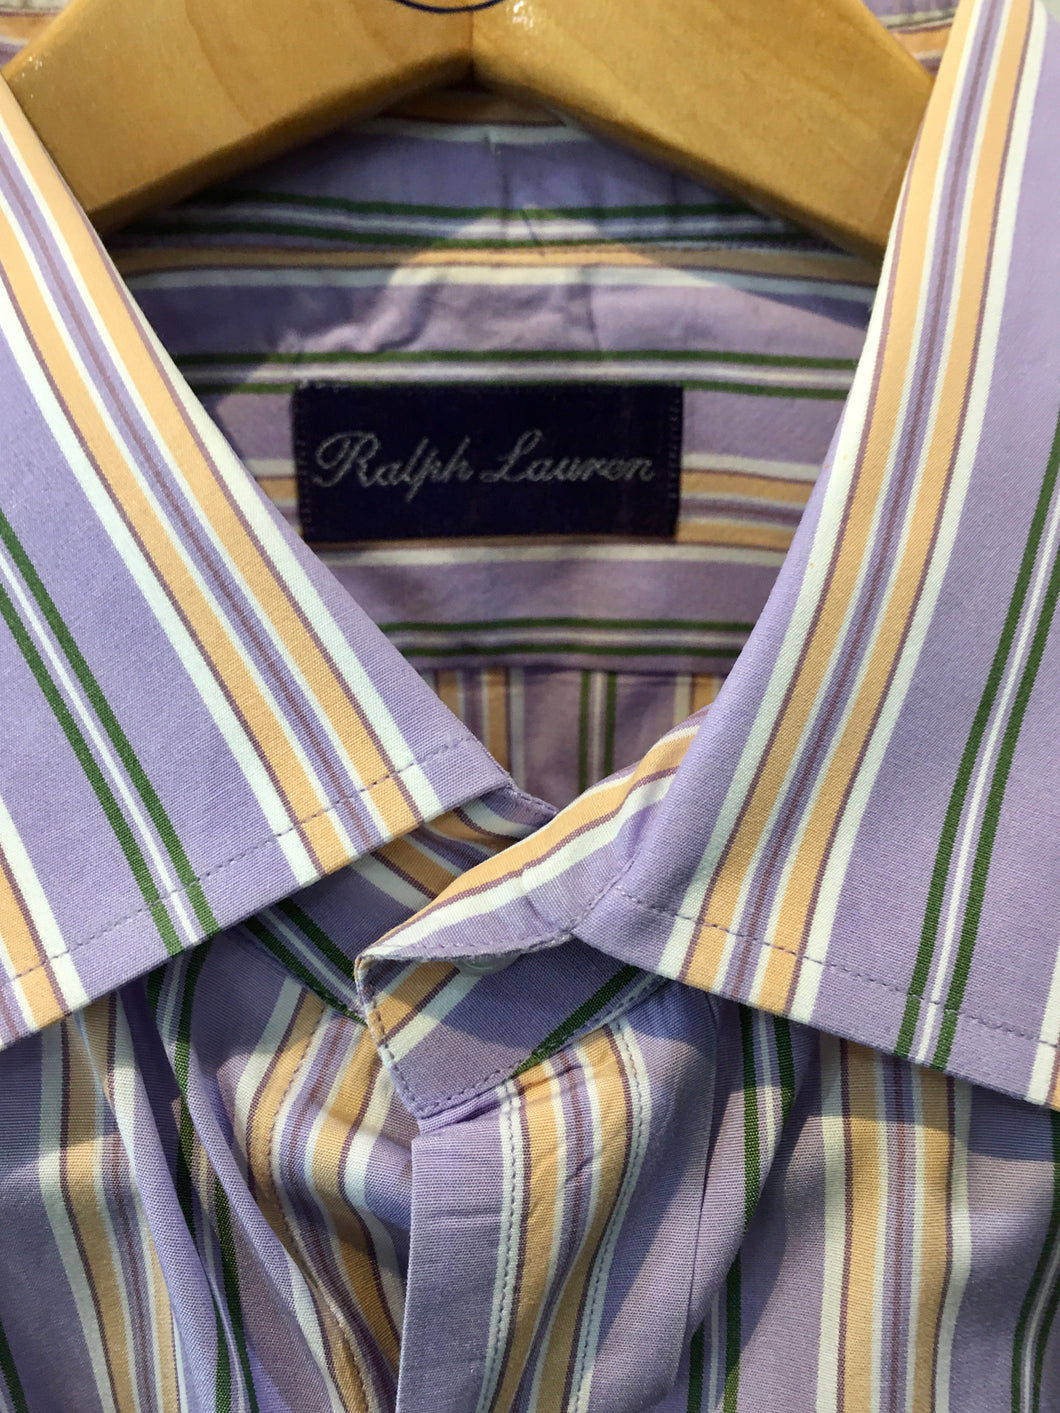 Ralph Lauren Purple Label Men's Shirt. Fine Cotton Fabric. Purple/ White/ Gold Multi-Stripe XL Preowned, Excellent Condition. $145.00